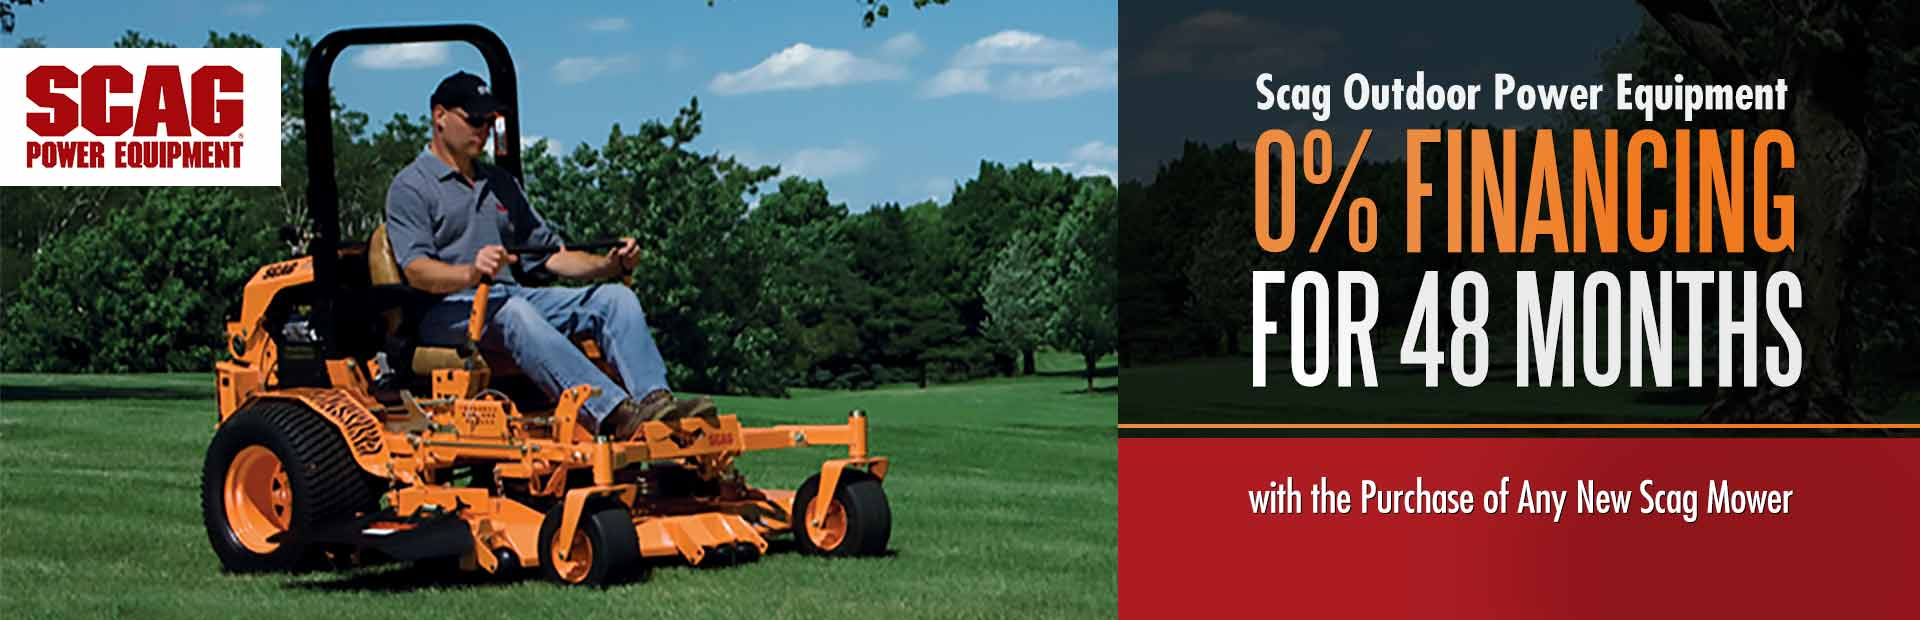 Get 0% financing for 48 months with the purchase of any new Scag mower!